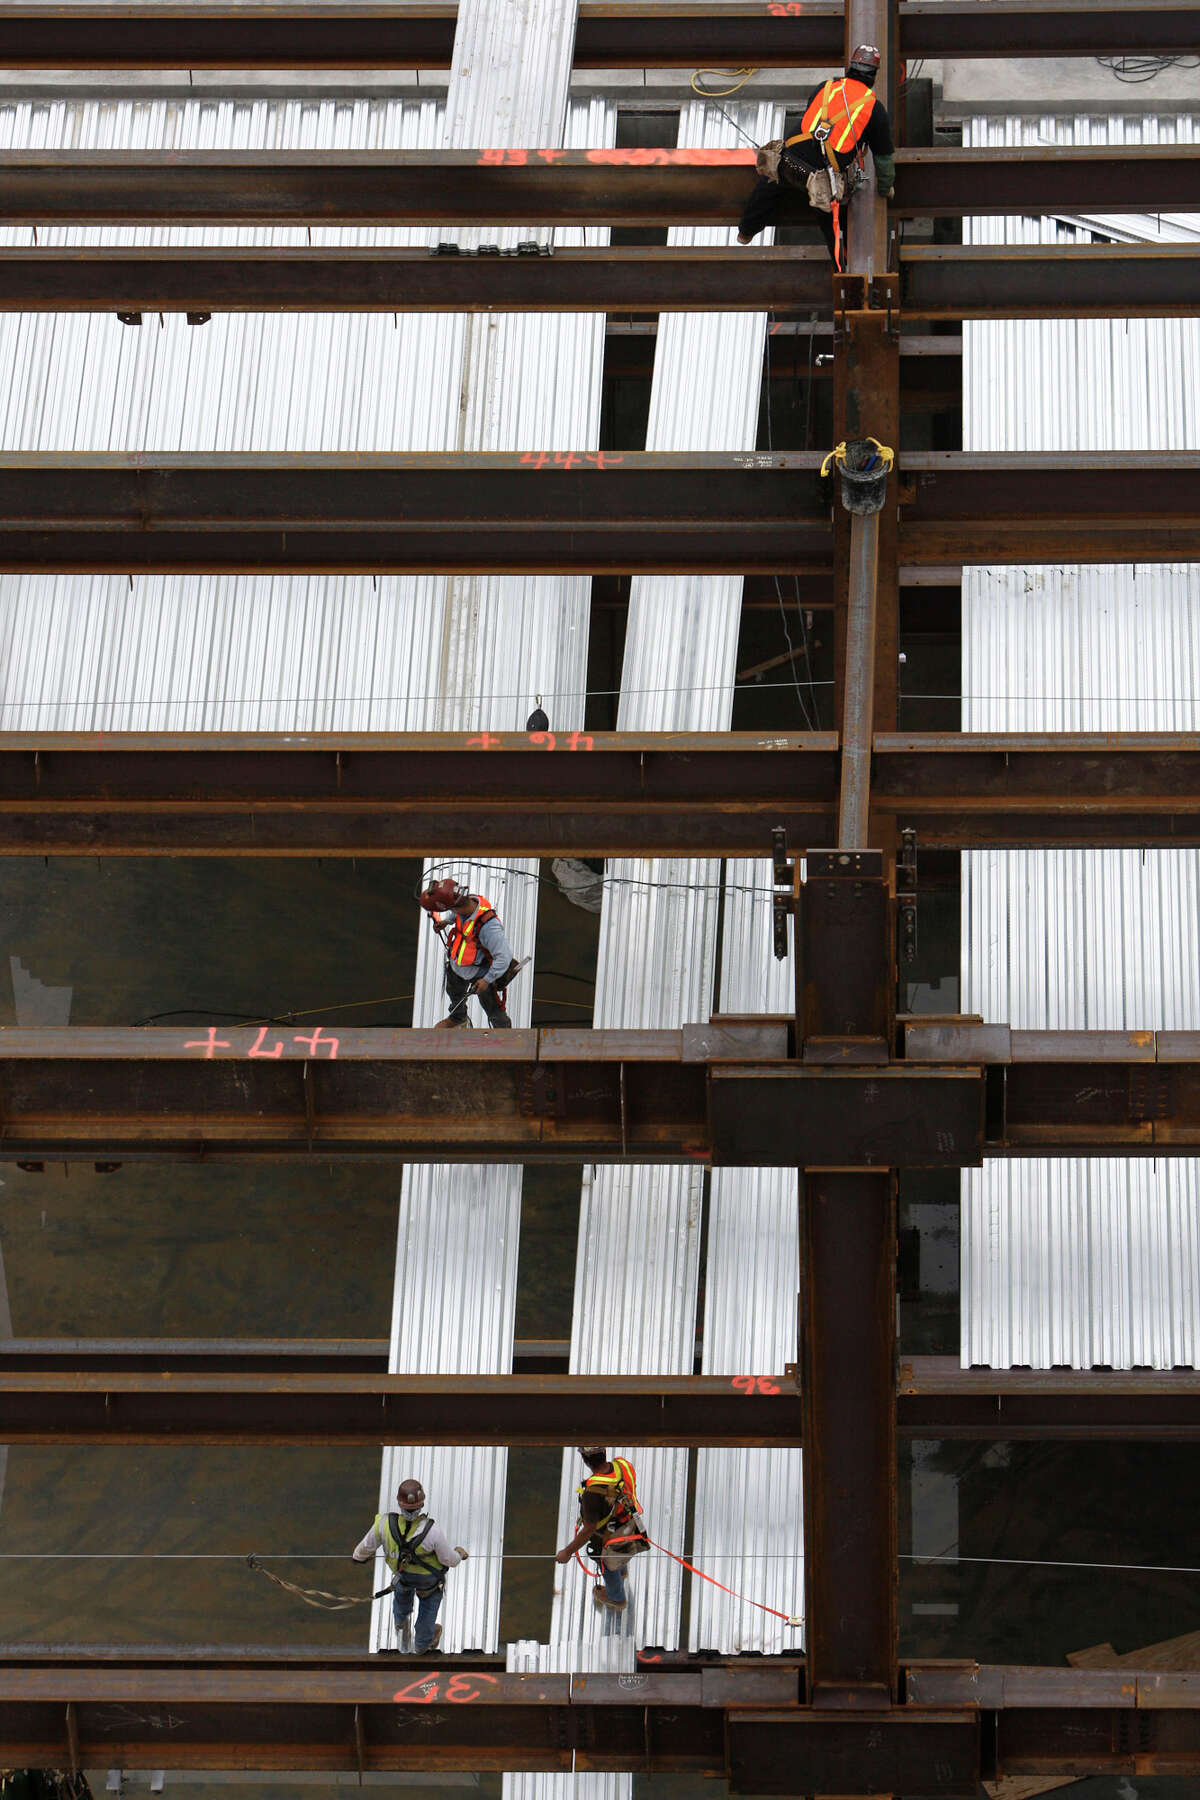 Workers tackle part of the BRAC construction at Brooke Army Medical Center on Tuesday, Oct. 6, 2009. The construction site employs over 2,000 workers on a daily basis. JERRY LARA\glara@express-news.net